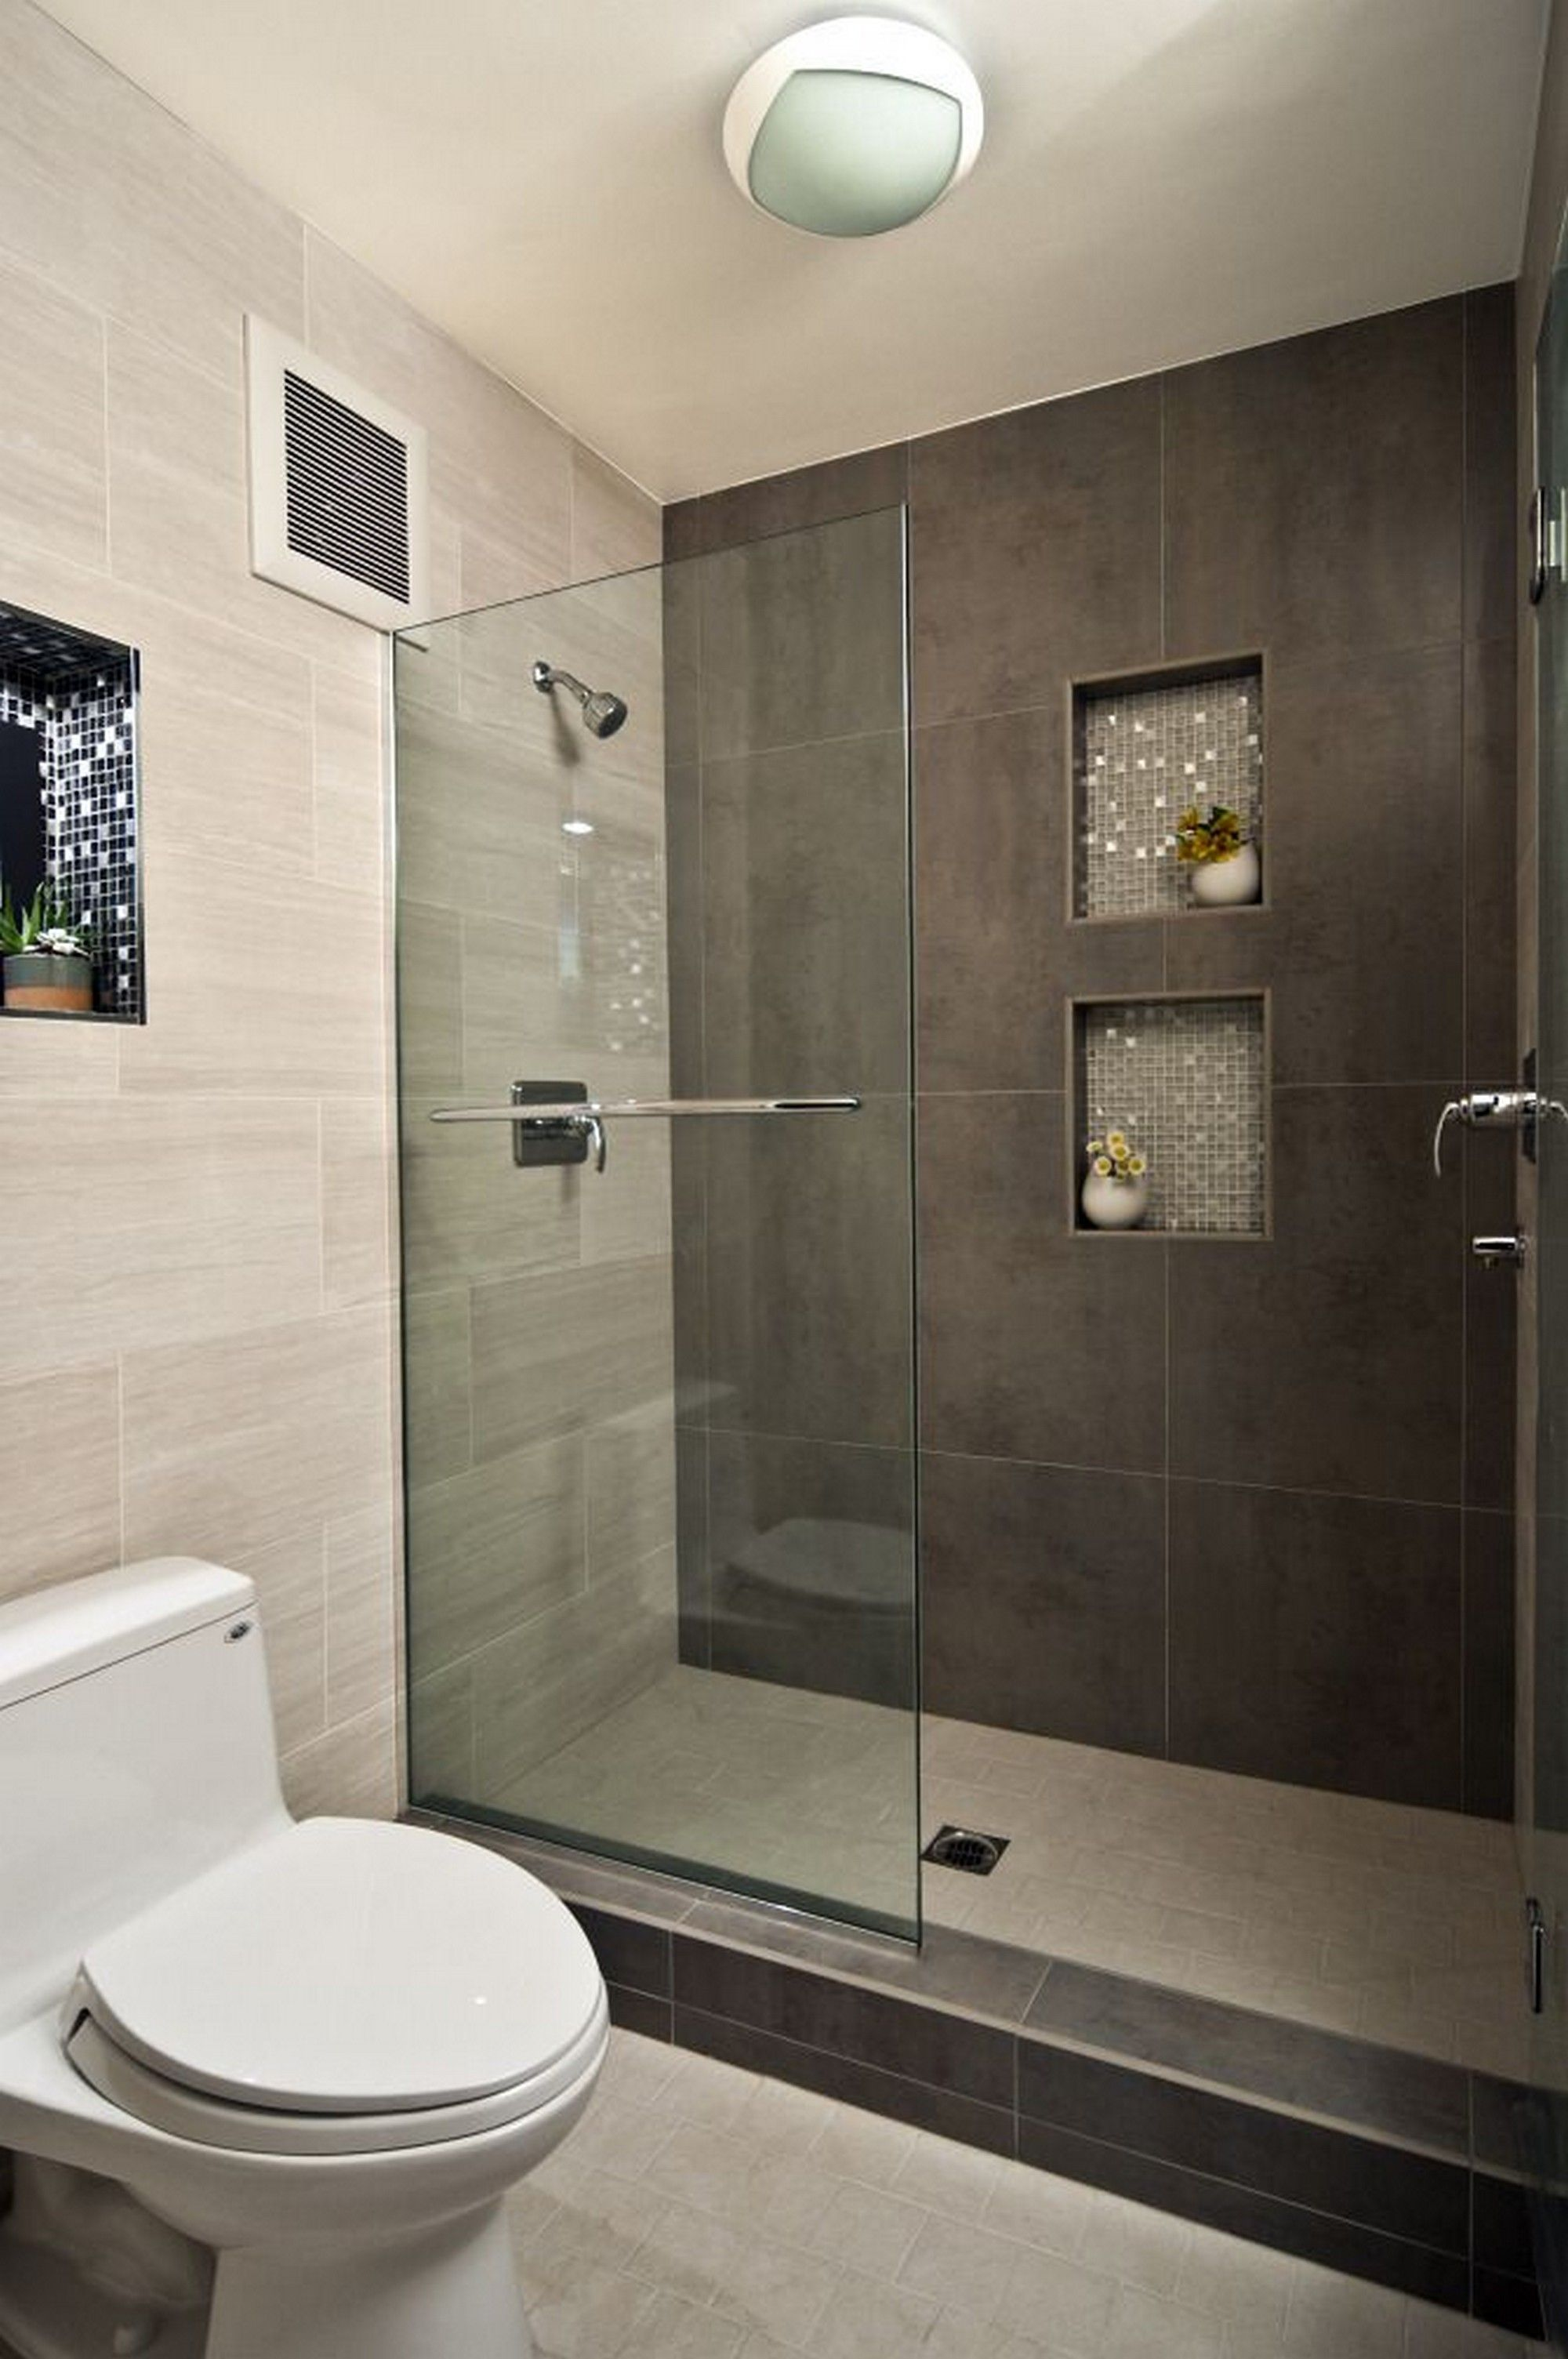 Modern bathroom design ideas with walk in shower small for Designer bathroom decor